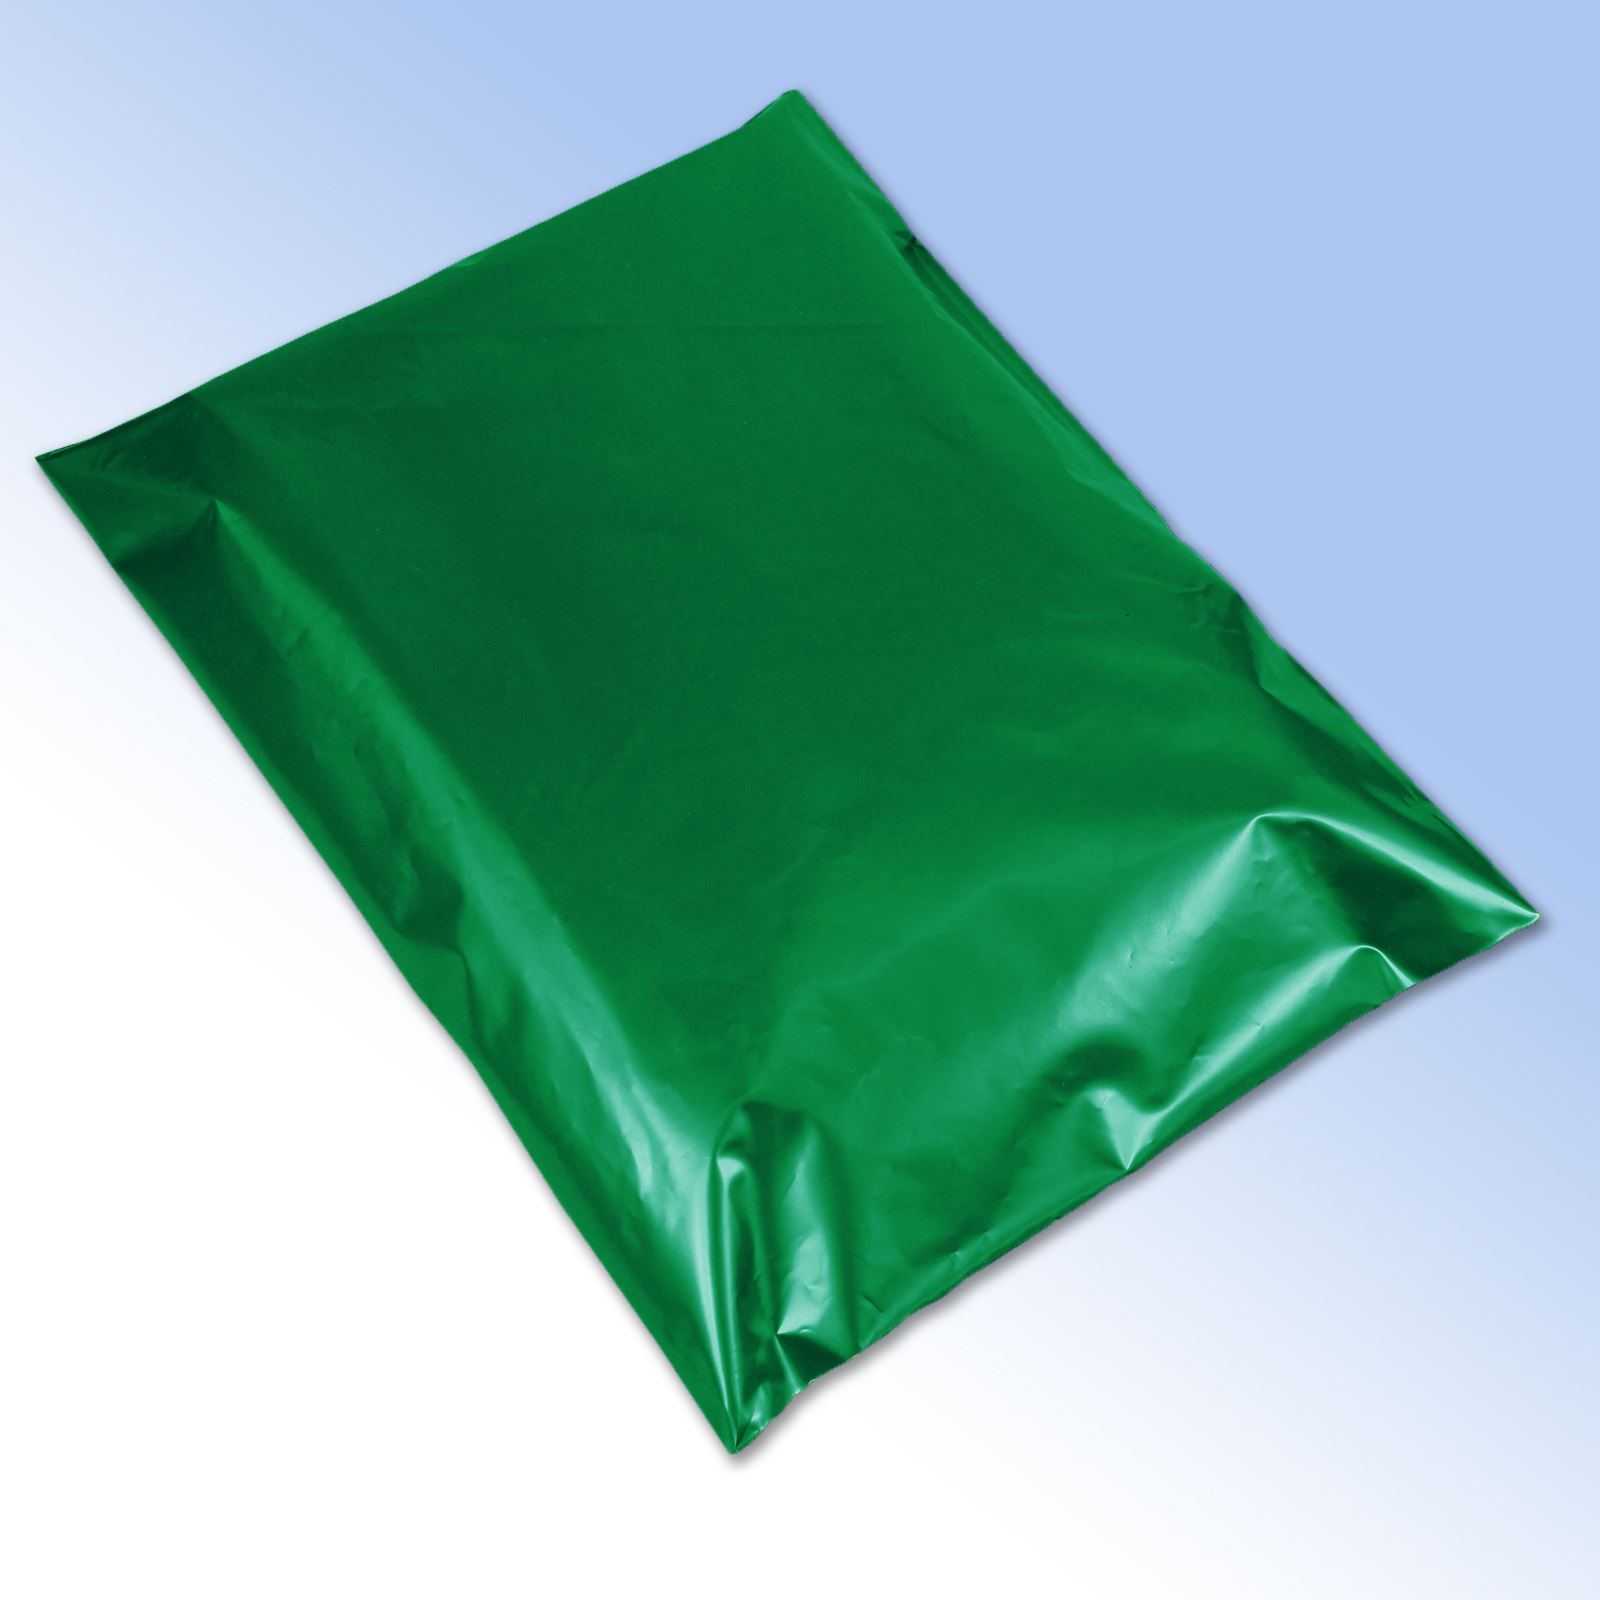 Coloured-Strong-50-Micron-COEX-Postage-Self-Seal-Plastic-Mailing-Bags-All-Sizes